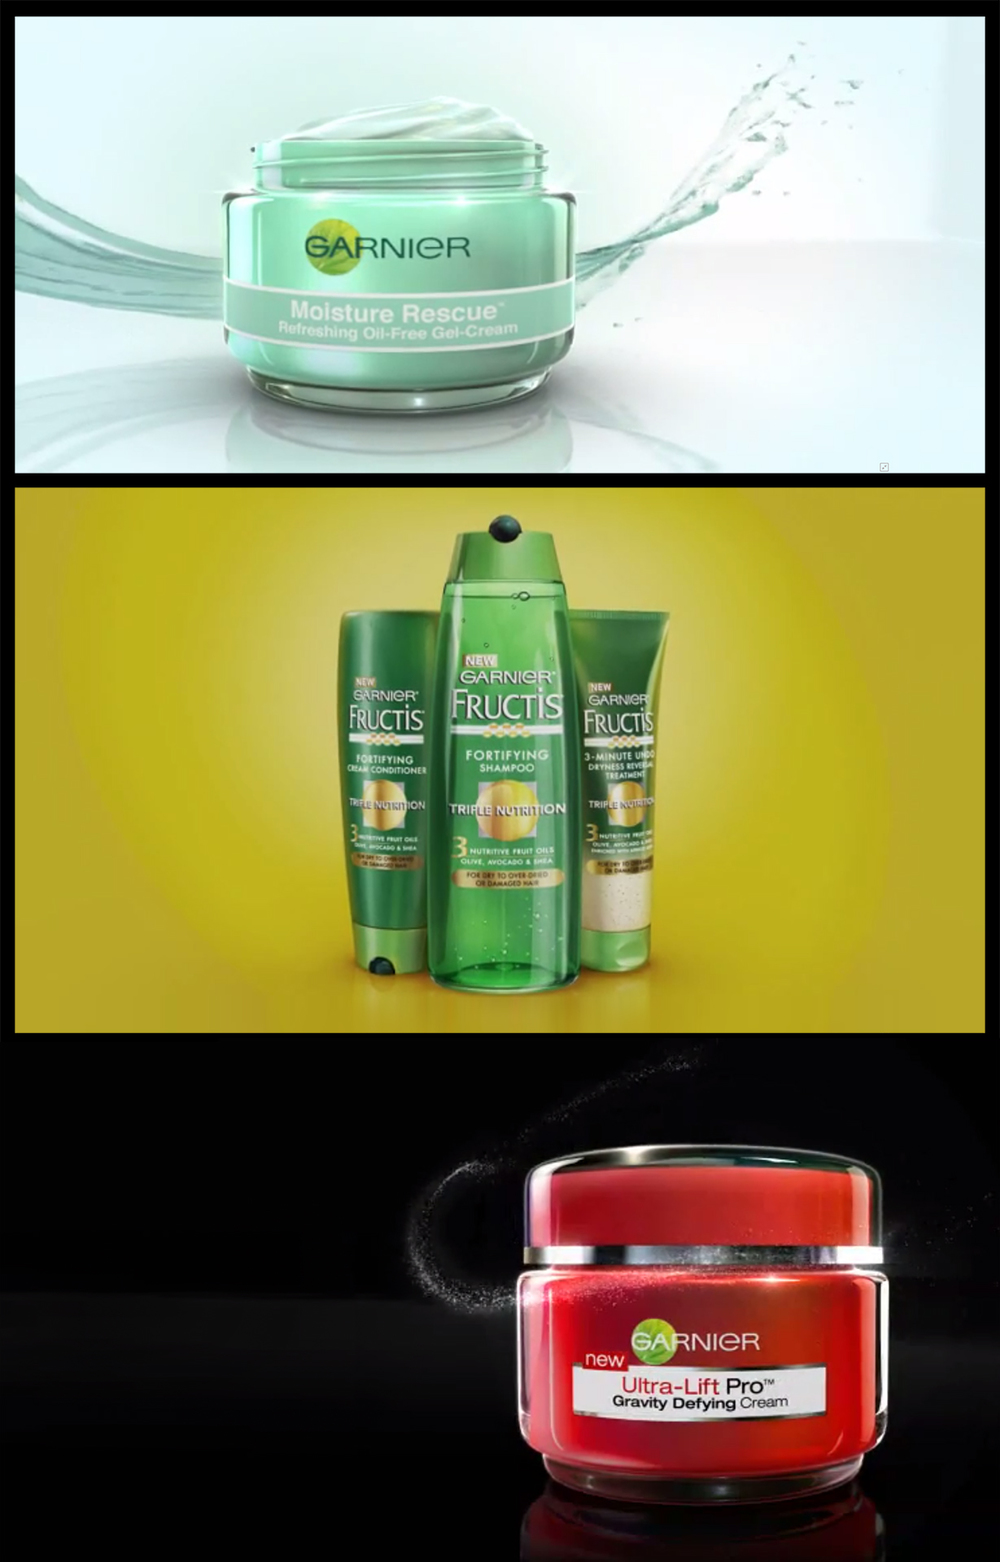 Garnier - Art Direction